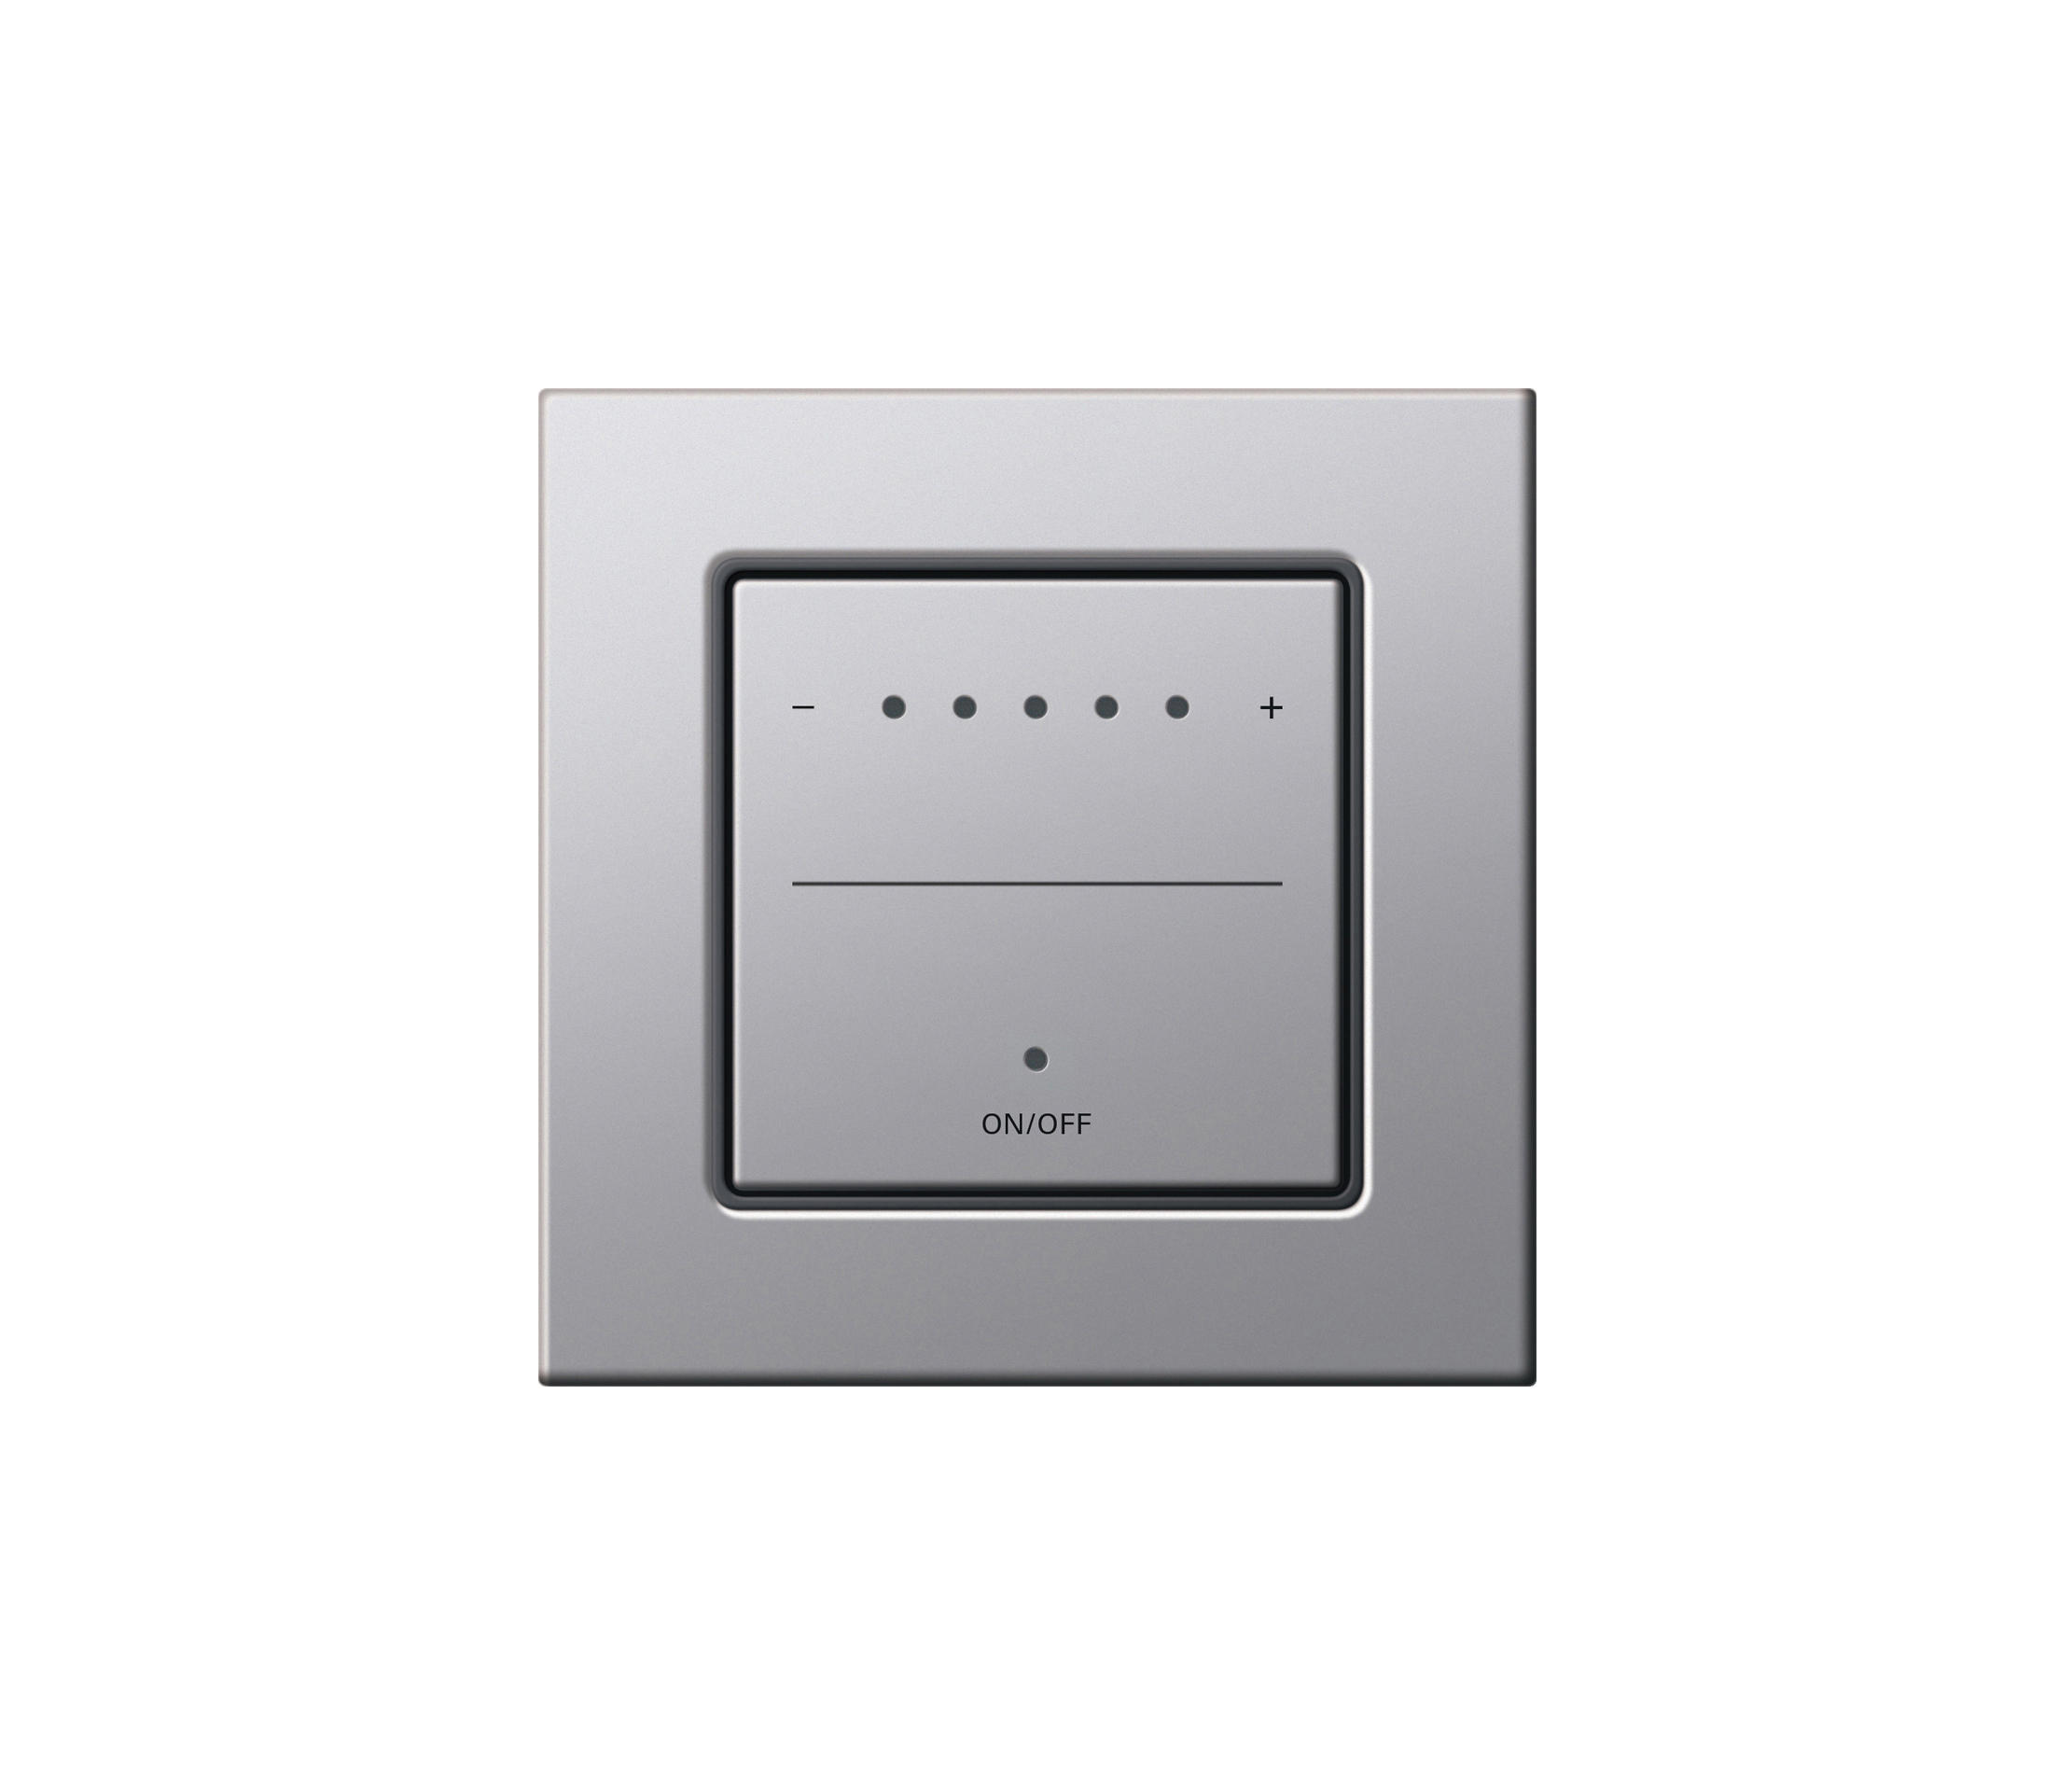 e22 touch dimmer button dimmers de gira architonic. Black Bedroom Furniture Sets. Home Design Ideas